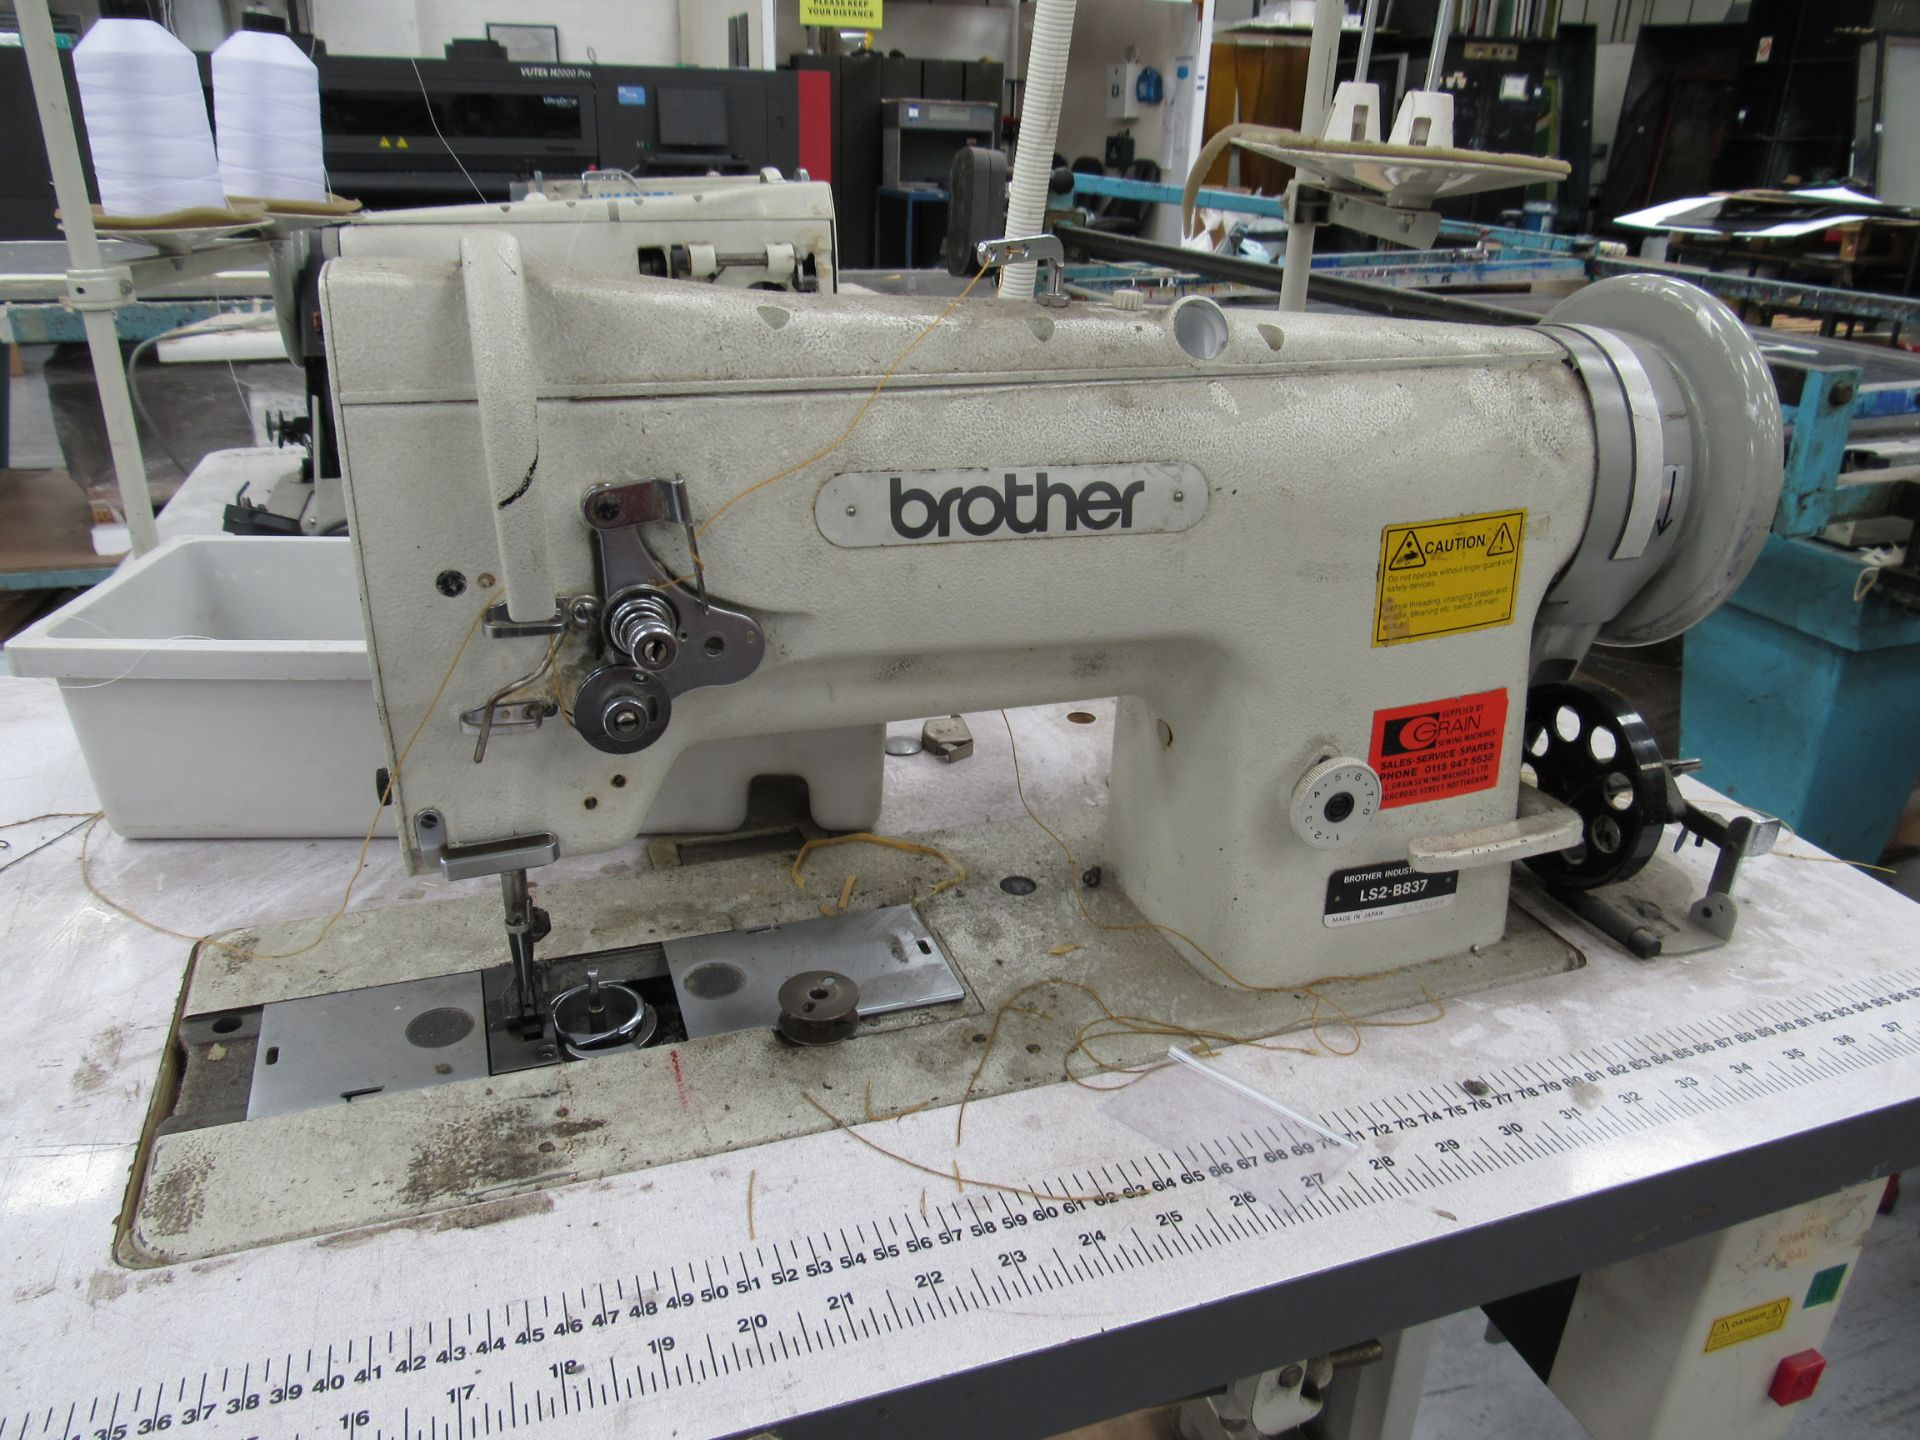 Brother LS2-B837 Industrial Sewing Machine Serial Number B9543539 - Image 3 of 3